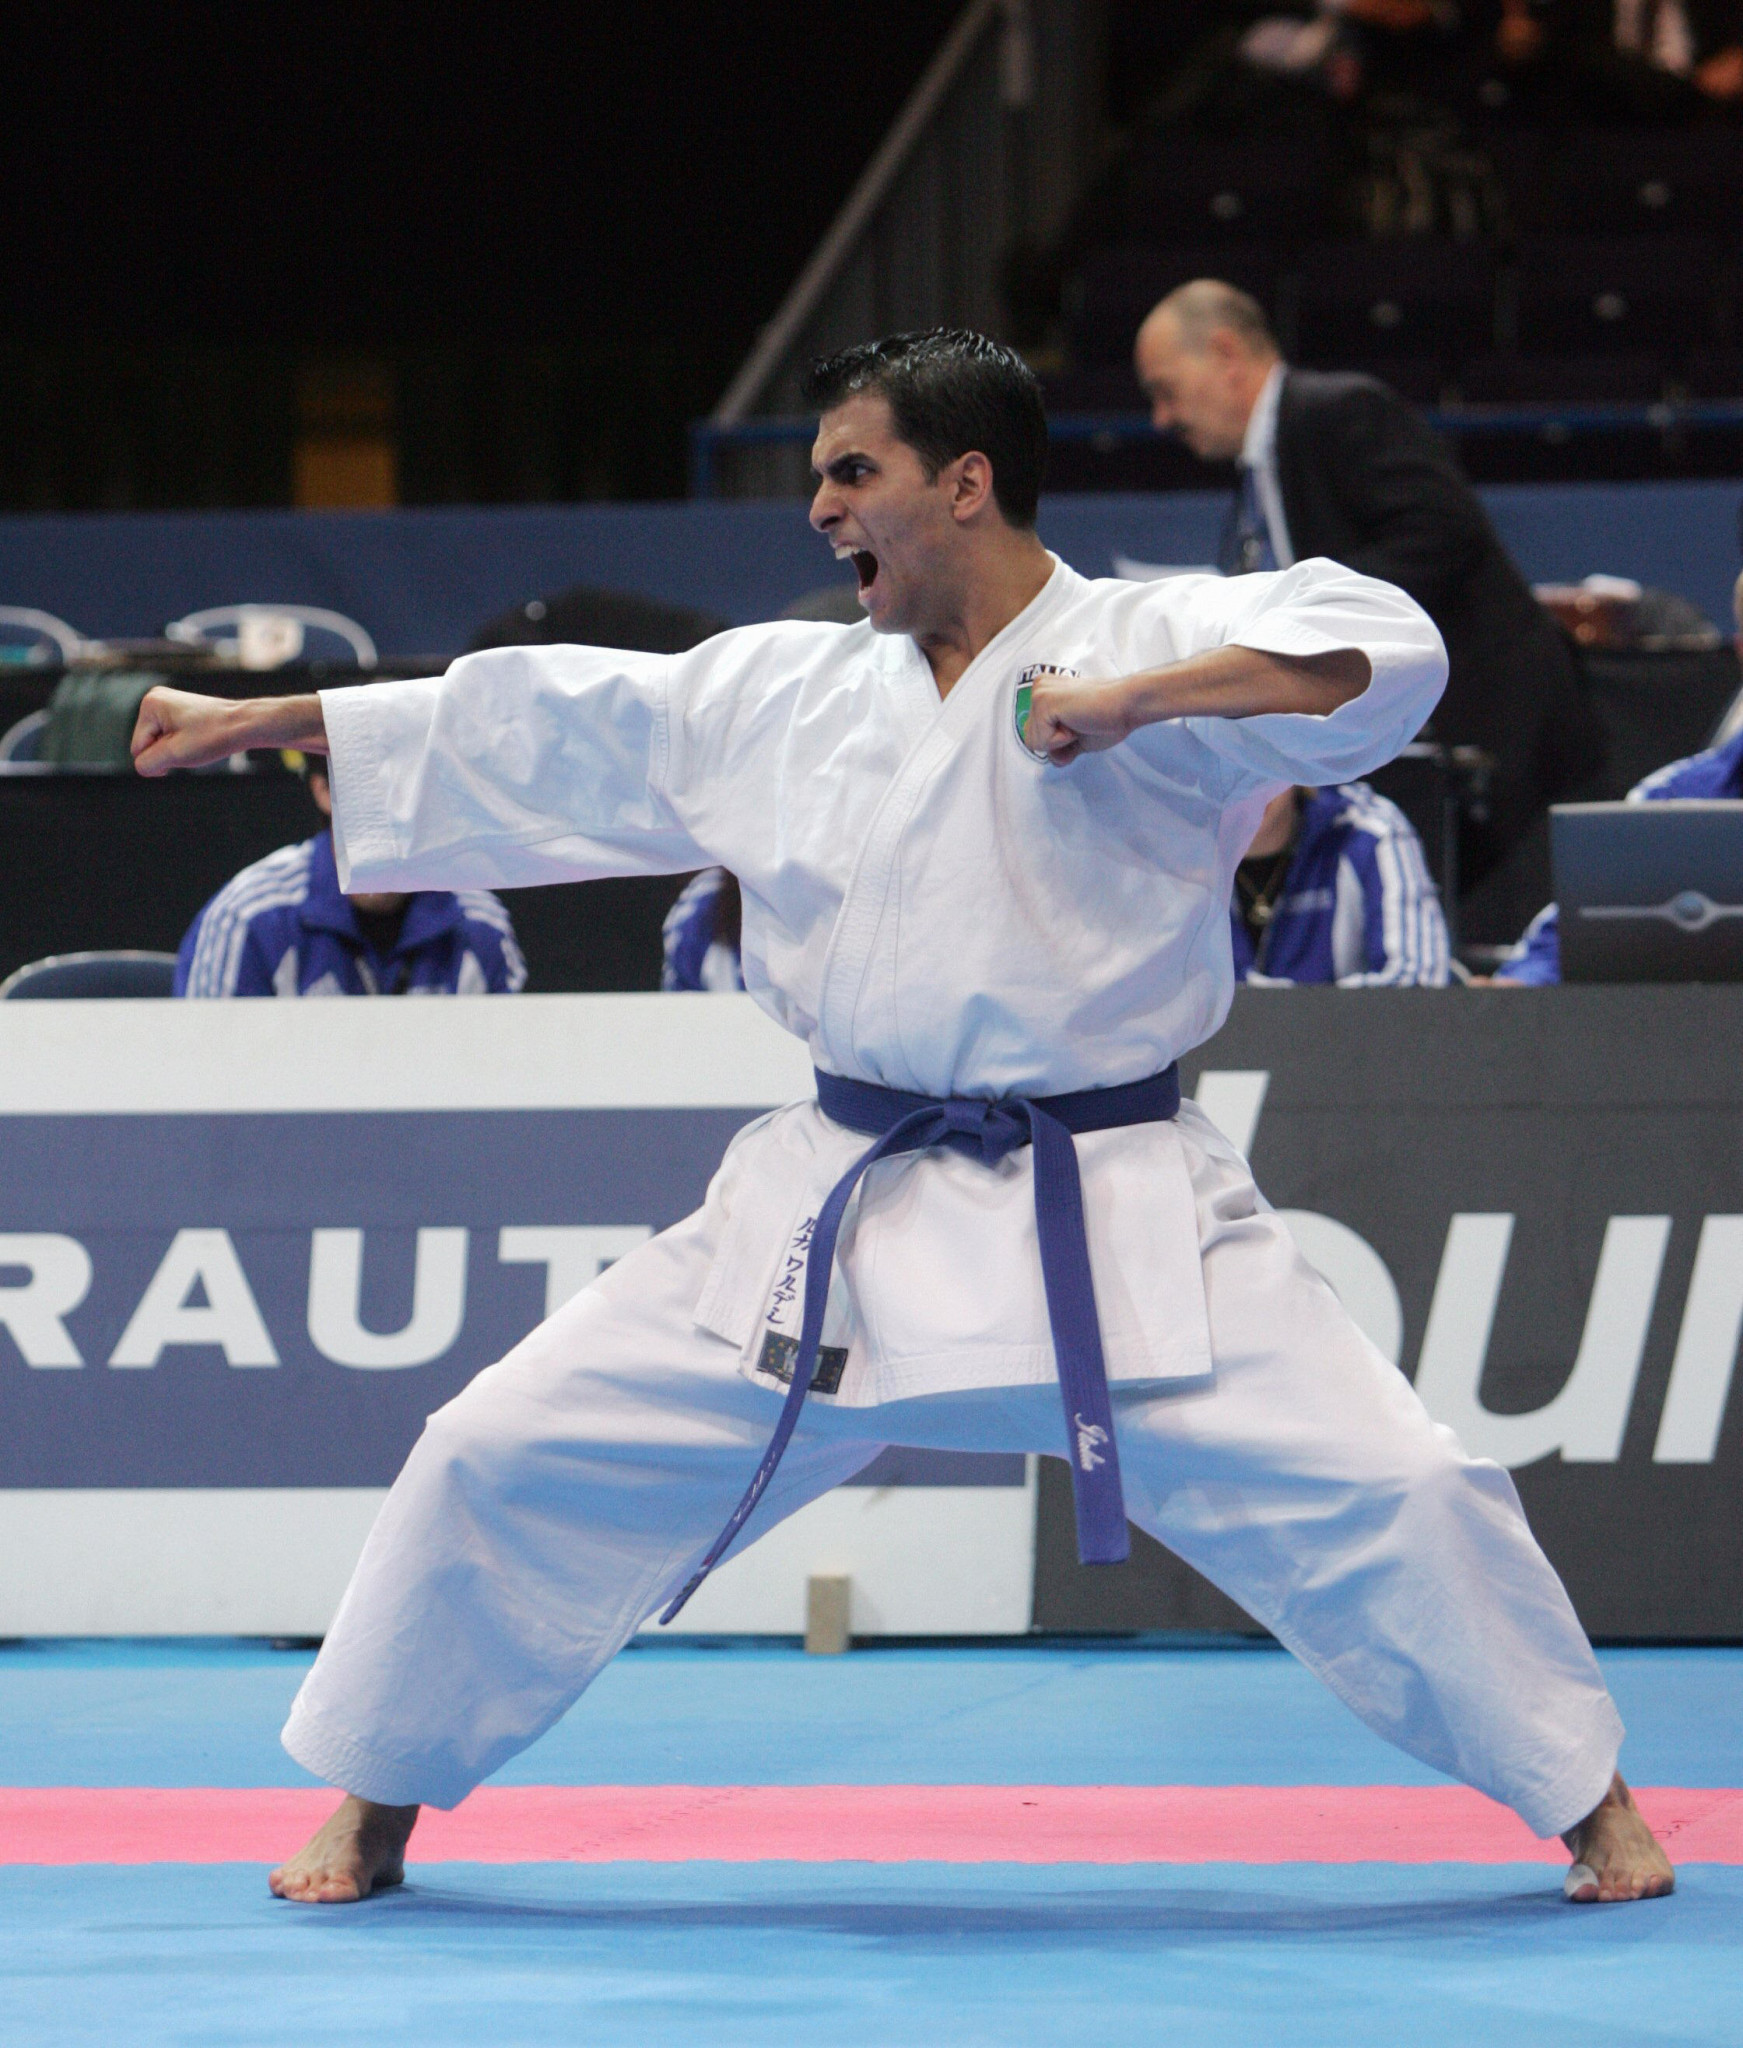 Italian karate legend Valdesi latest to feature in online training session